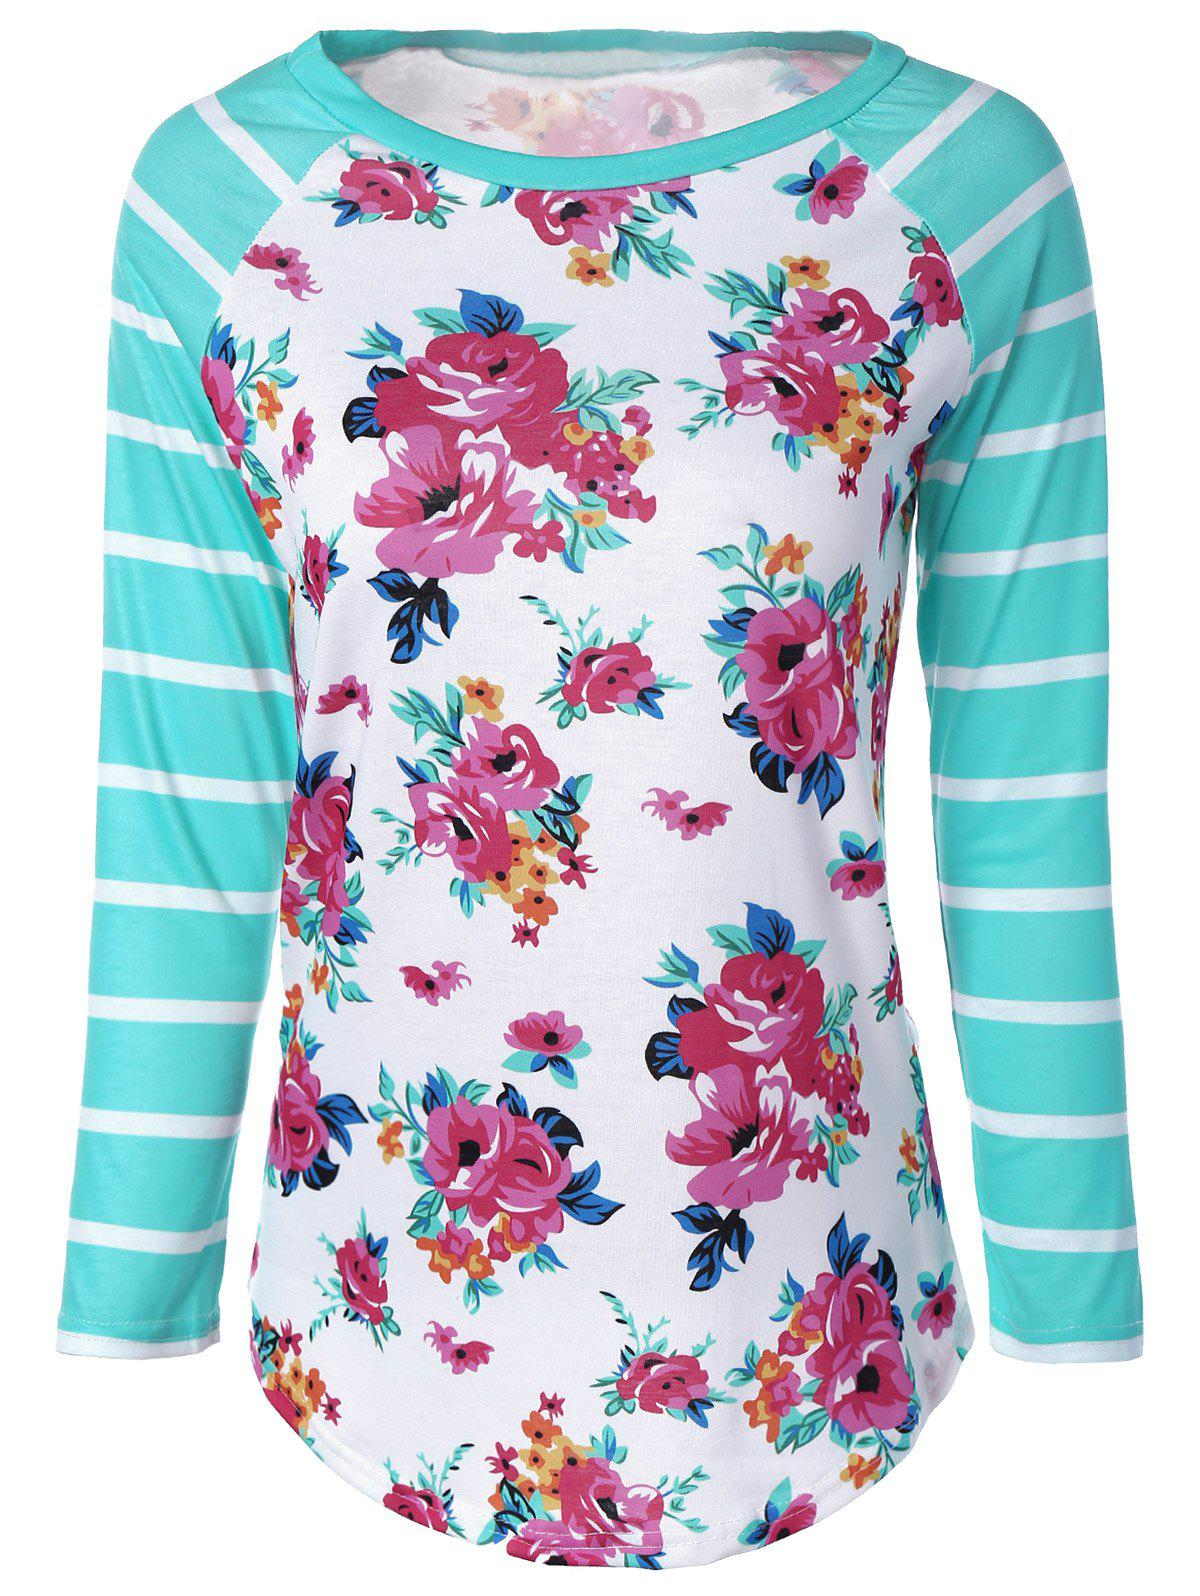 Stylish Stripe Floral Print Long Raglan Sleeve T-Shirt - COLORMIX L